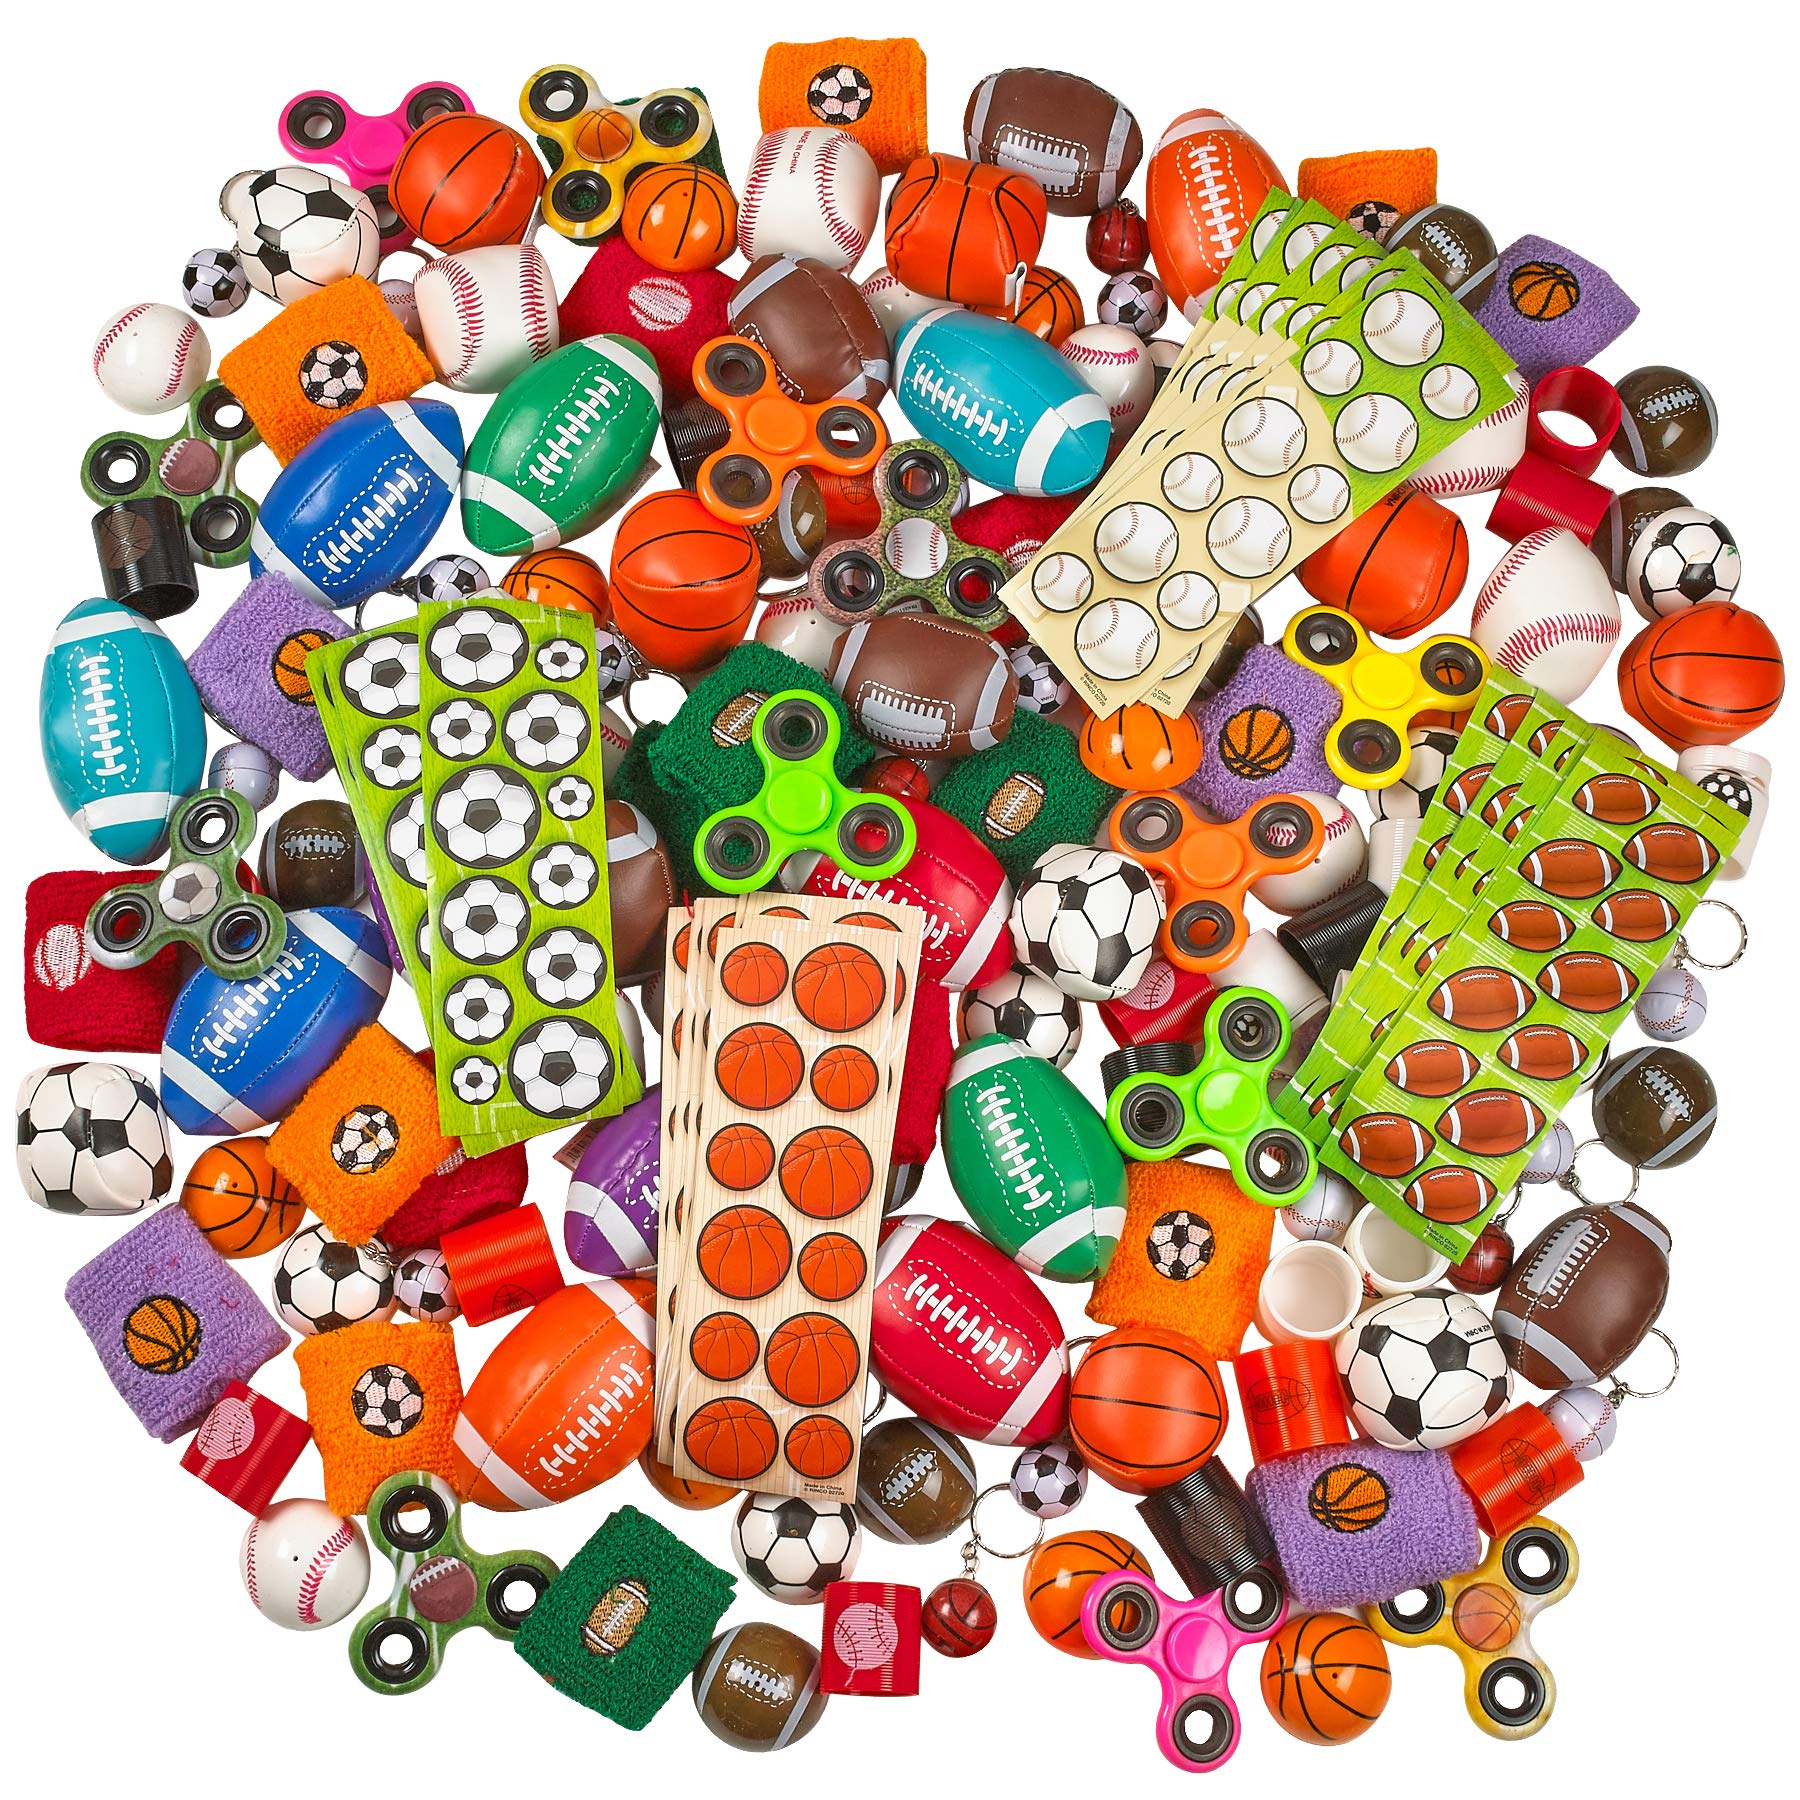 Kicko Sports Balls Toy 250 Pc. Assortment - Variety Pack for Classrooms, Playground and Carnivals - Perfect for Birthday, Novelties, Game Prizes, Educational Toys, Party Favor, and Supplies